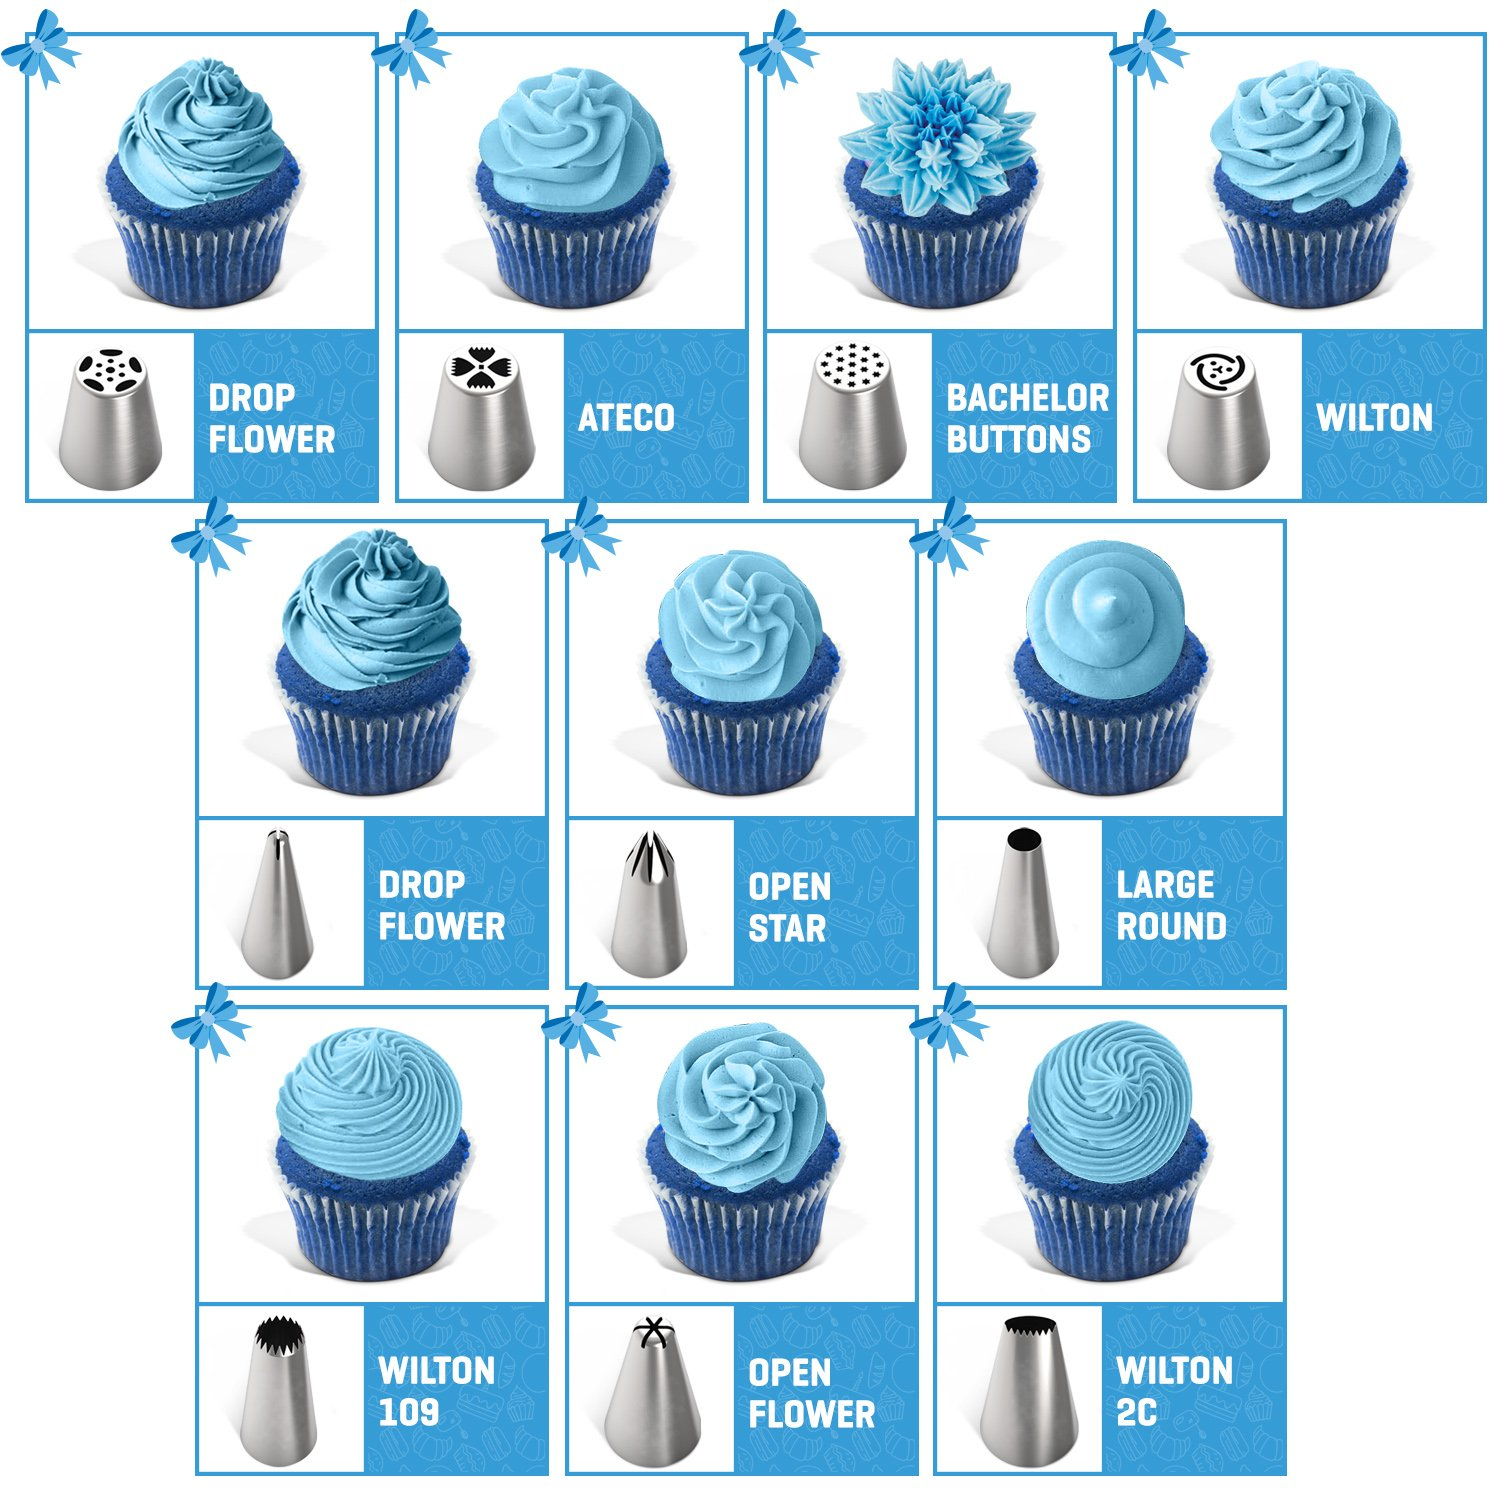 Frostinc Perfectly Assorted Cake Decorating Supplies 34 Pcs Kit - 10 Russian & Cone Icing Tips with 2 Couplers, 2 Reusable & 6 Disposable Piping Bags, 8 Model Tools, Scrapers & BONUS Items by Frostinc (Image #7)